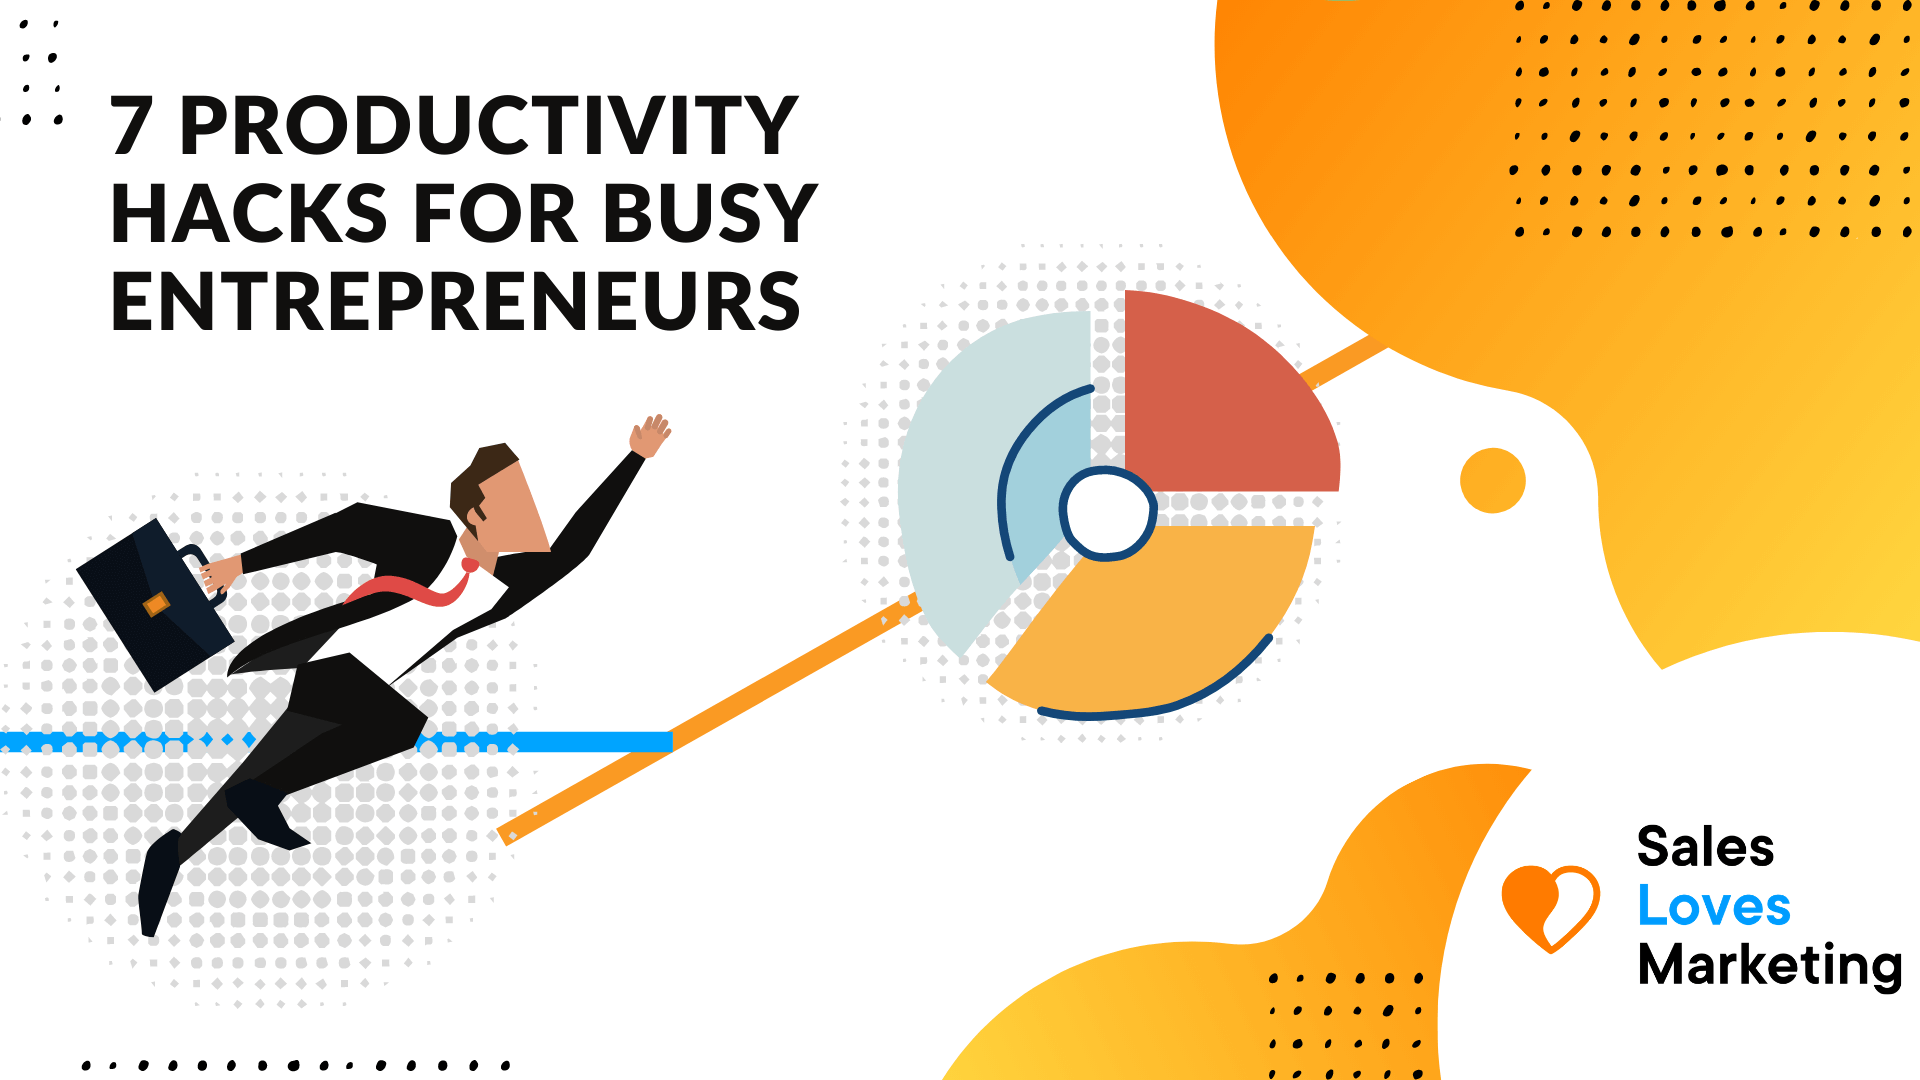 How to stay productive as an entrepreneur